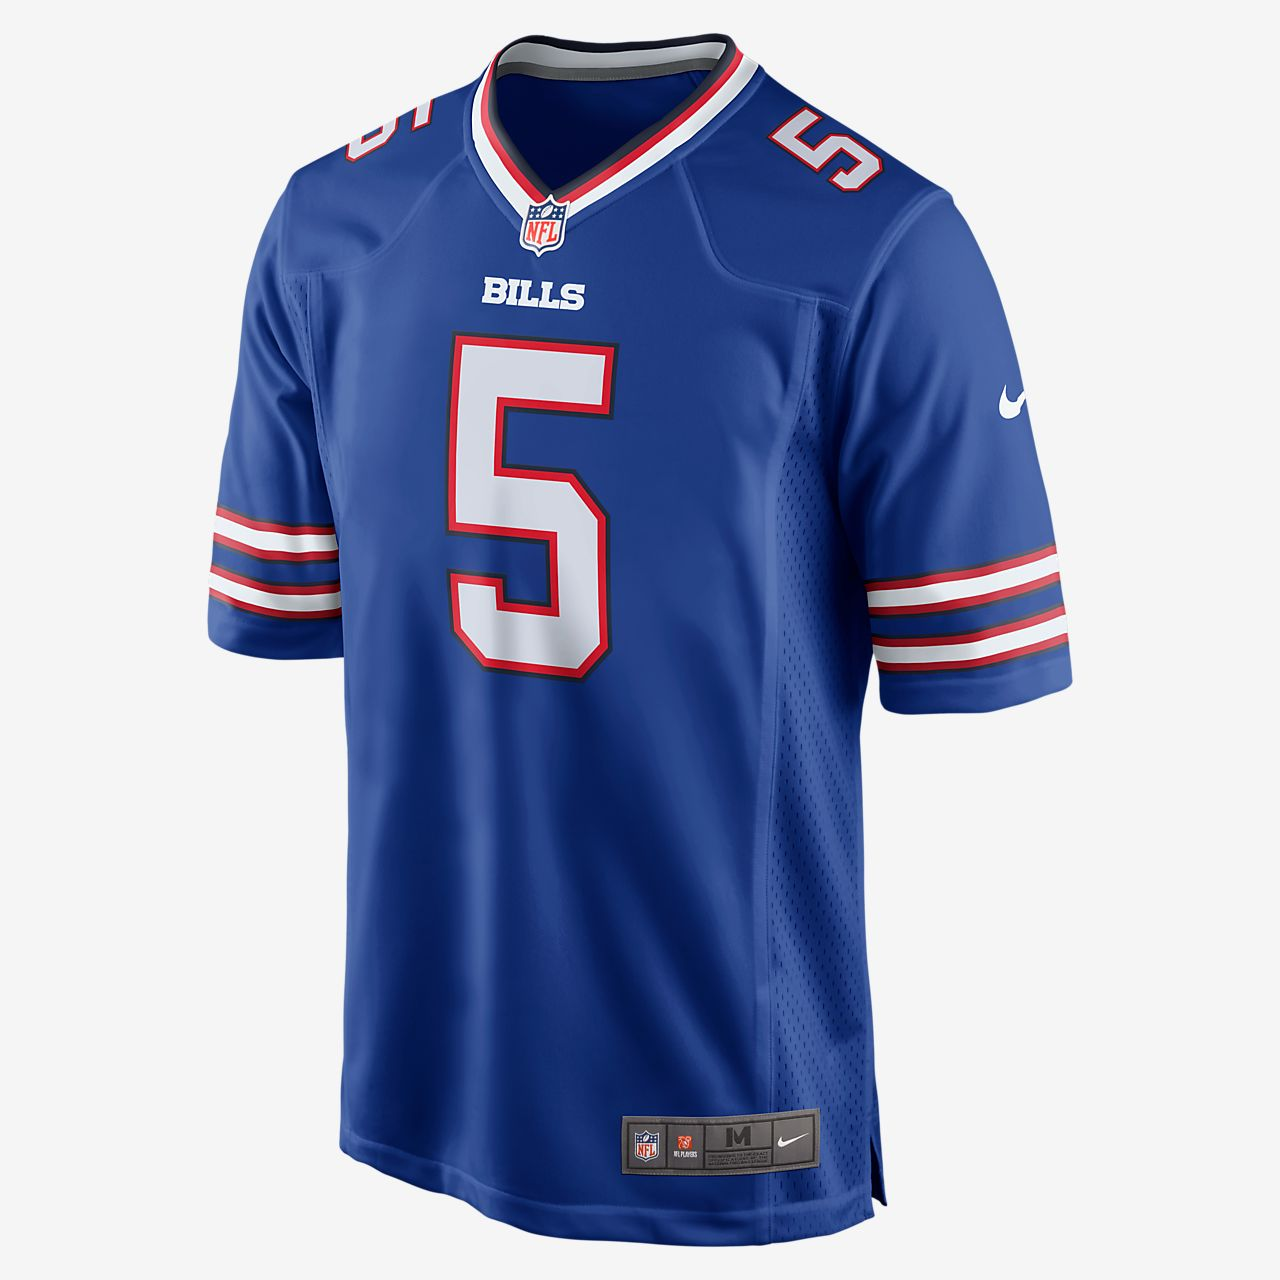 ... NFL Buffalo Bills American Football Game (Tyrod Taylor) Men's American  Football Jersey